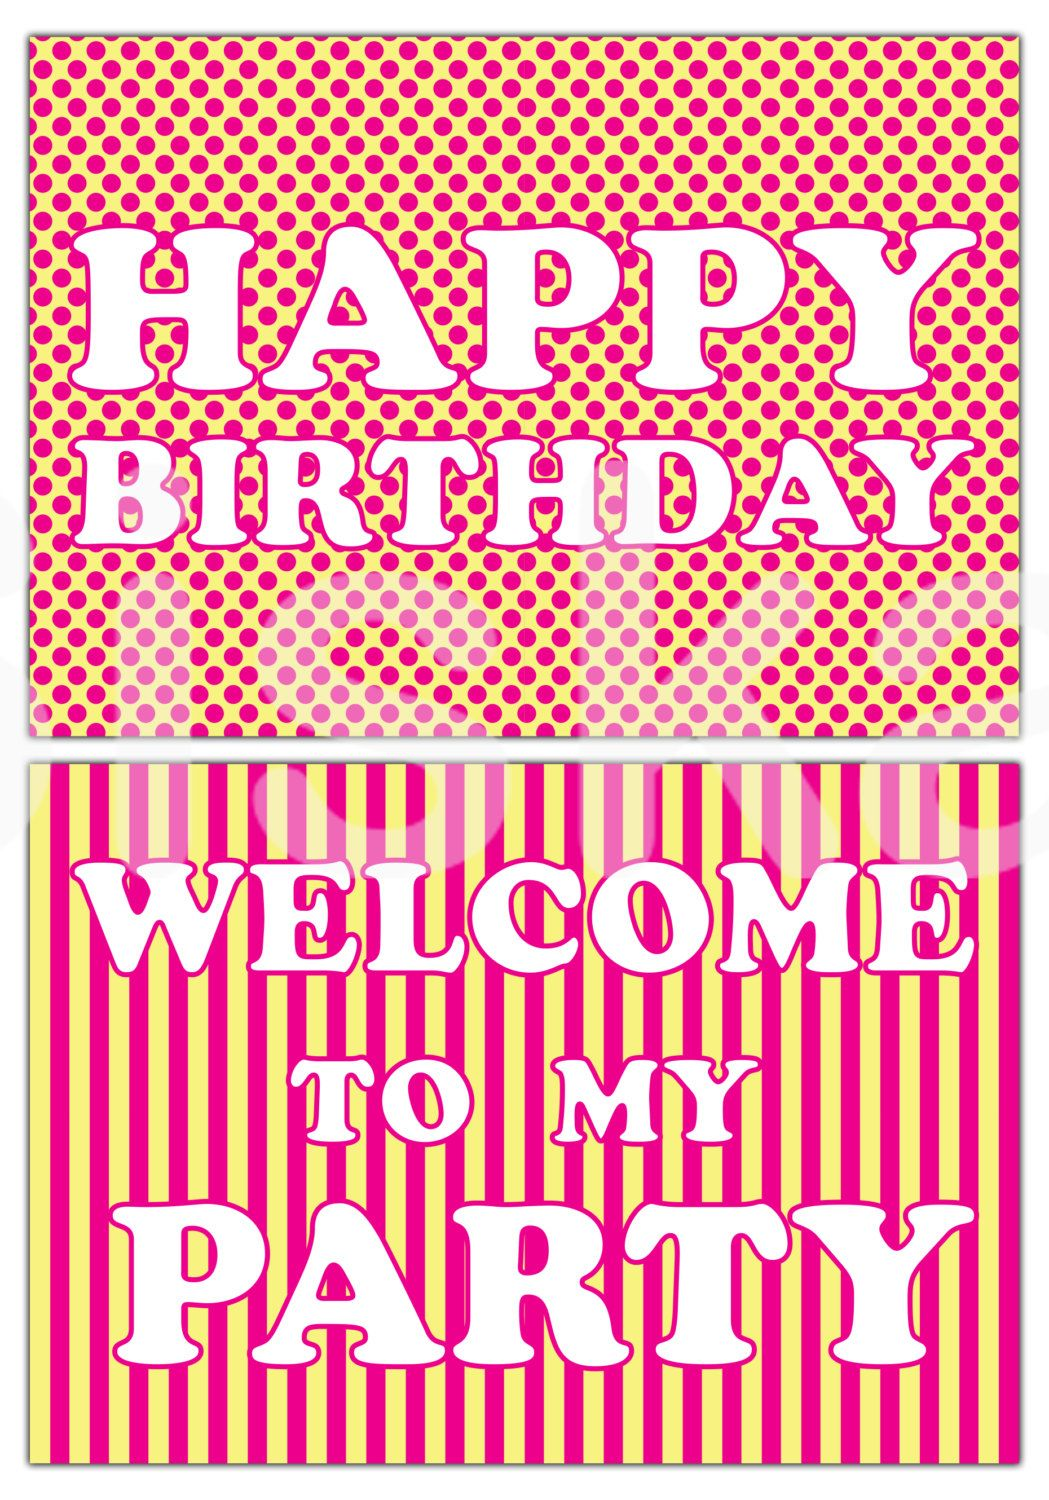 party WELCOME SIGNS Printable | Yellow & Pink Party Decorations | Instant Download | Siskale (0.94 USD) by Siskale